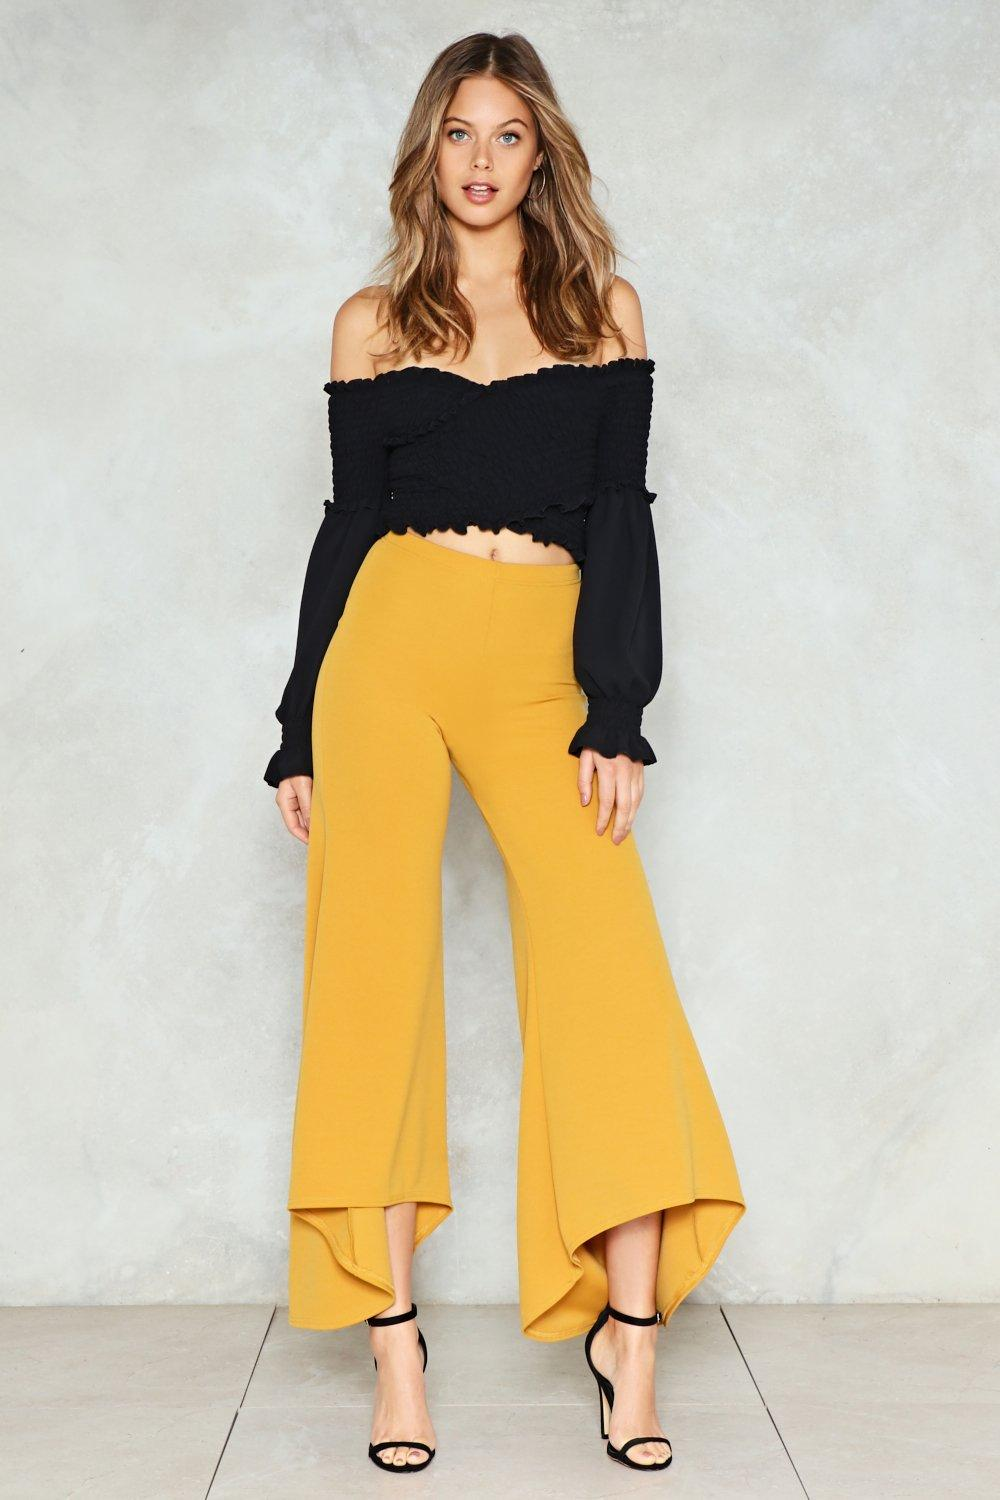 Off the Shoulder and Off the Hook: 15 Affordable Pieces That Ace This Mega-Trend Off the Shoulder and Off the Hook: 15 Affordable Pieces That Ace This Mega-Trend new images